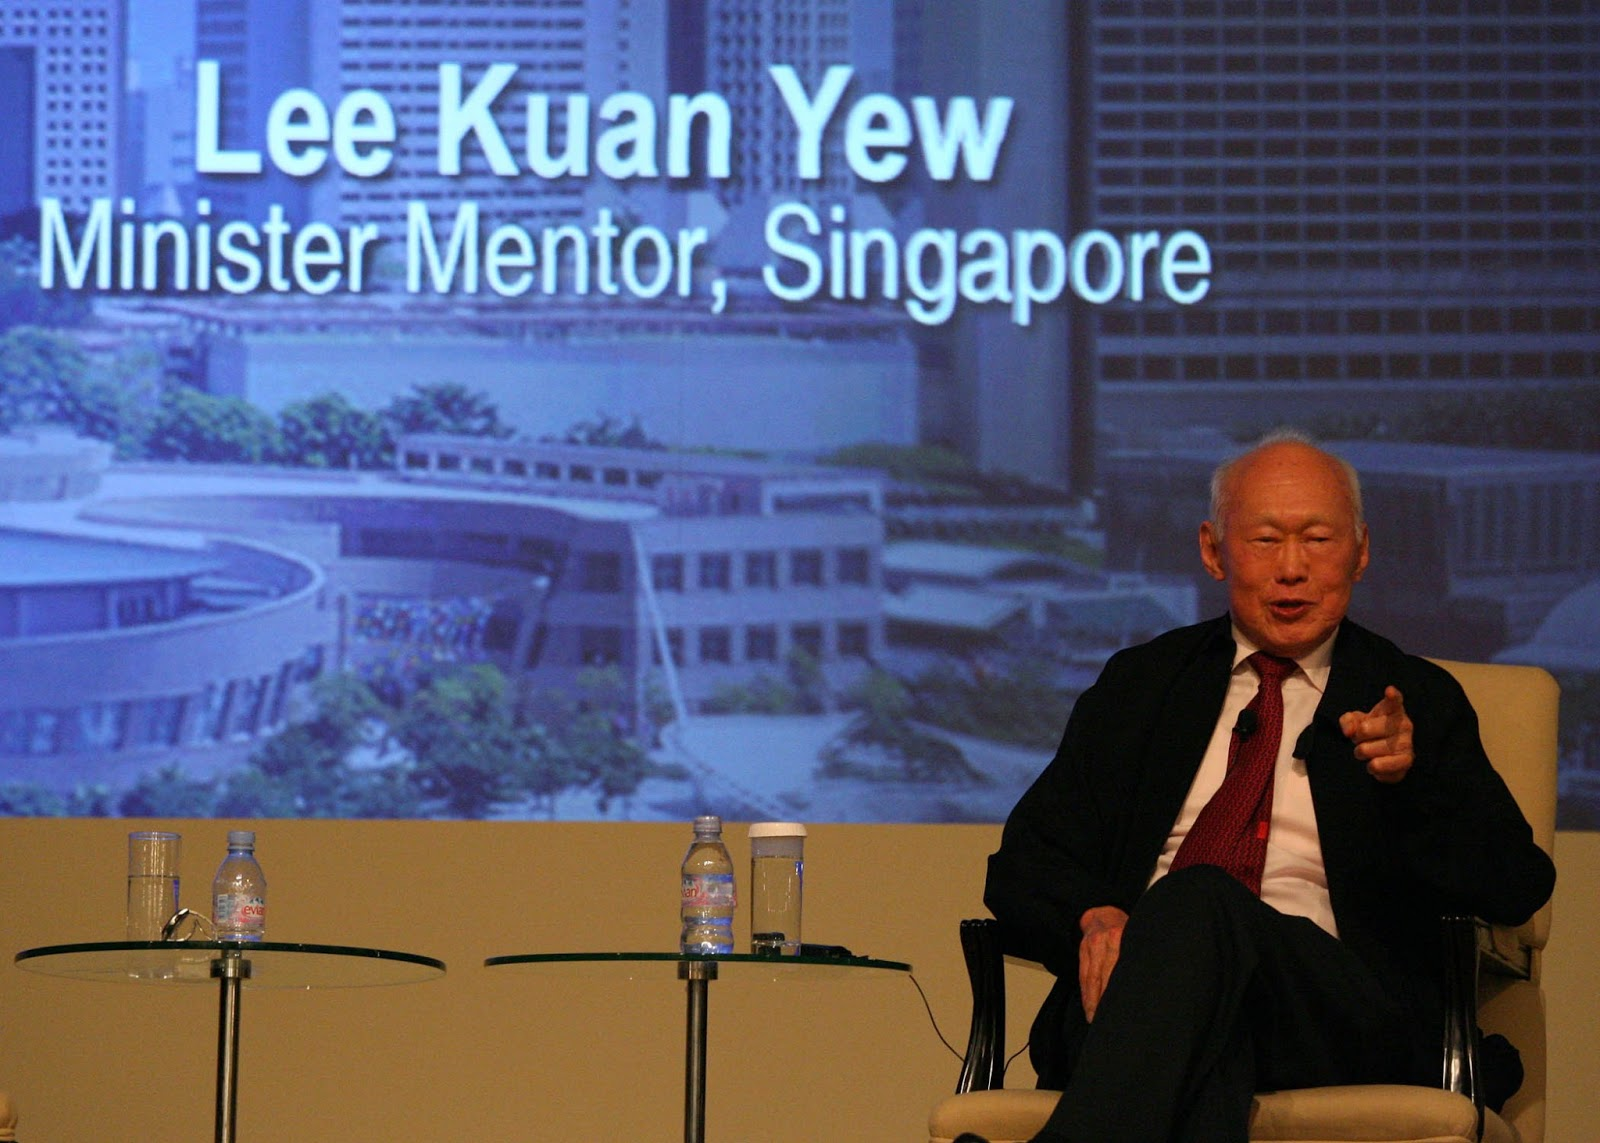 lee kuan yew Lee kuan yew is considered the founding father of modern singapore born harry lee kuan yew in september 1923, he governed singapore over three decades and oversaw its separation from malaysia .